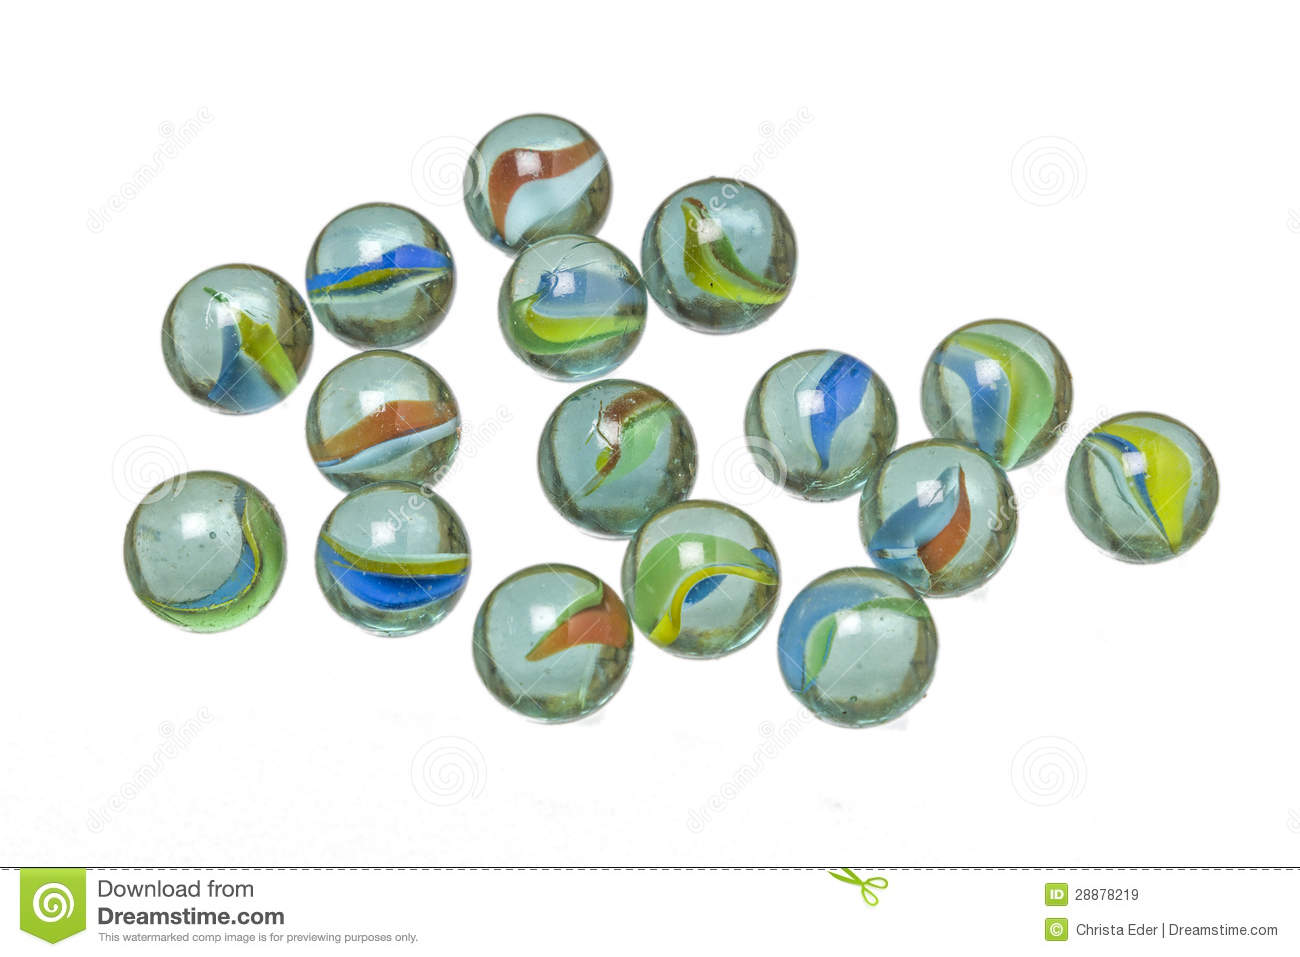 Most Valuable Marbles | German Handmade Glass Marbles ... |Most Desirable Marbles Glass